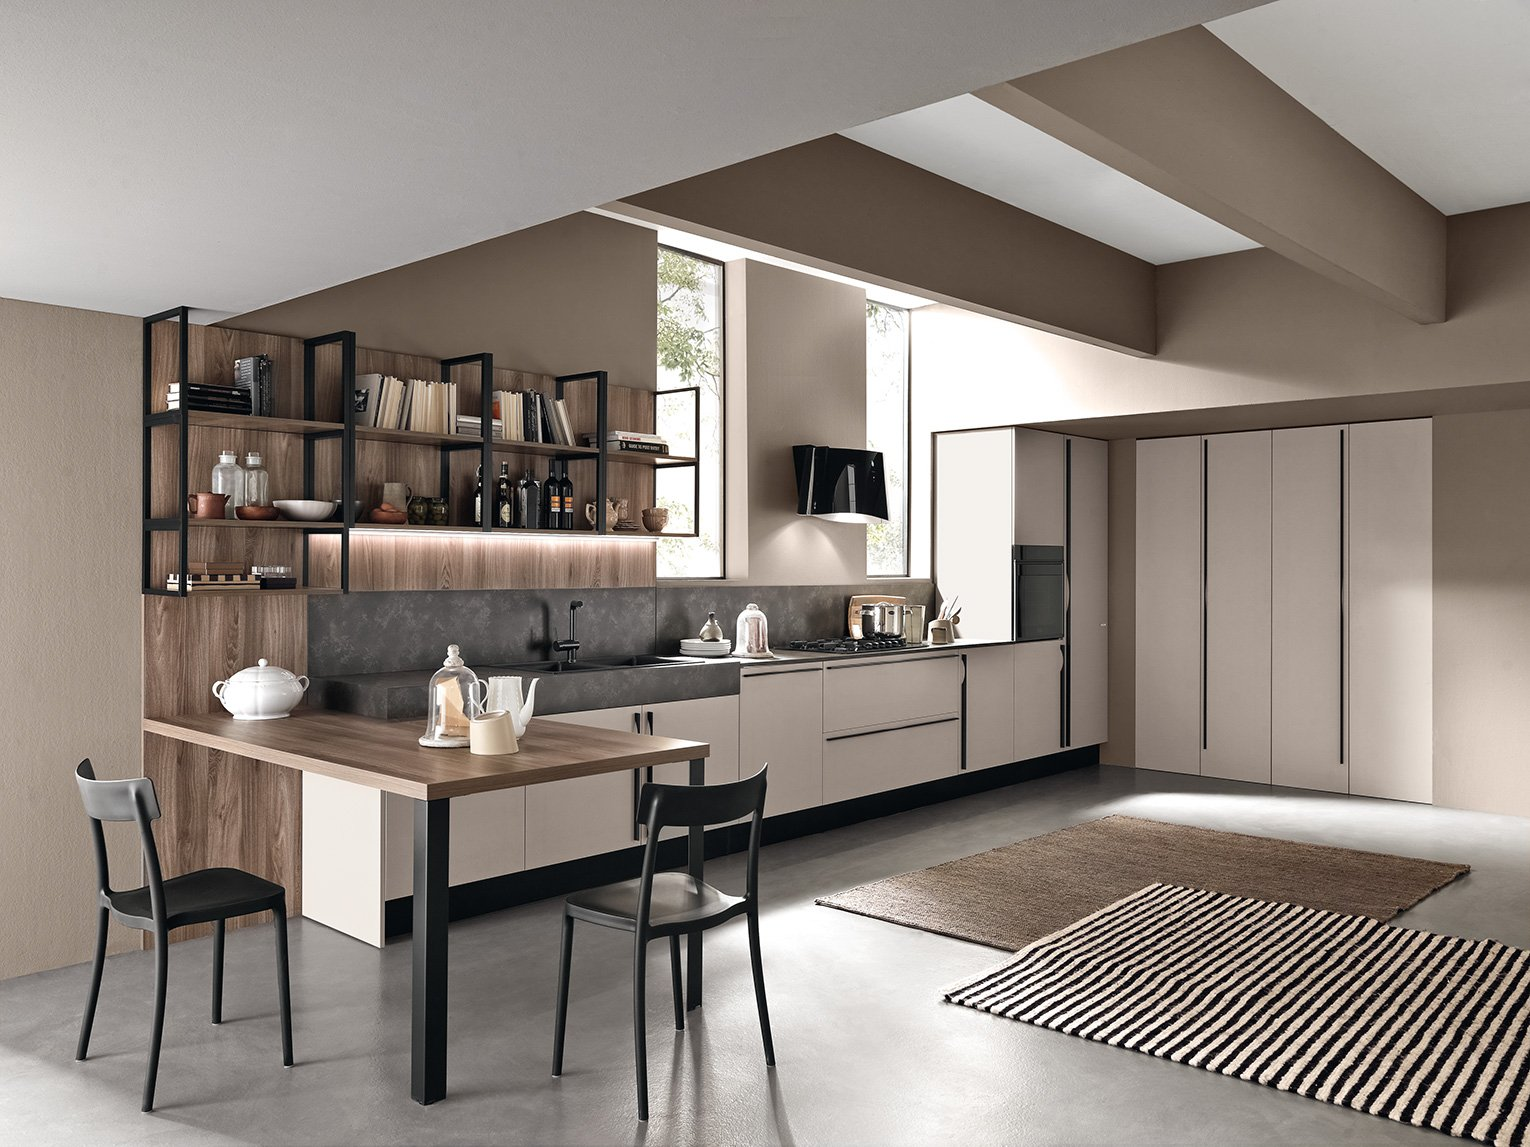 Cucine Febal Prezzi - Home Design E Interior Ideas - Refoias.net